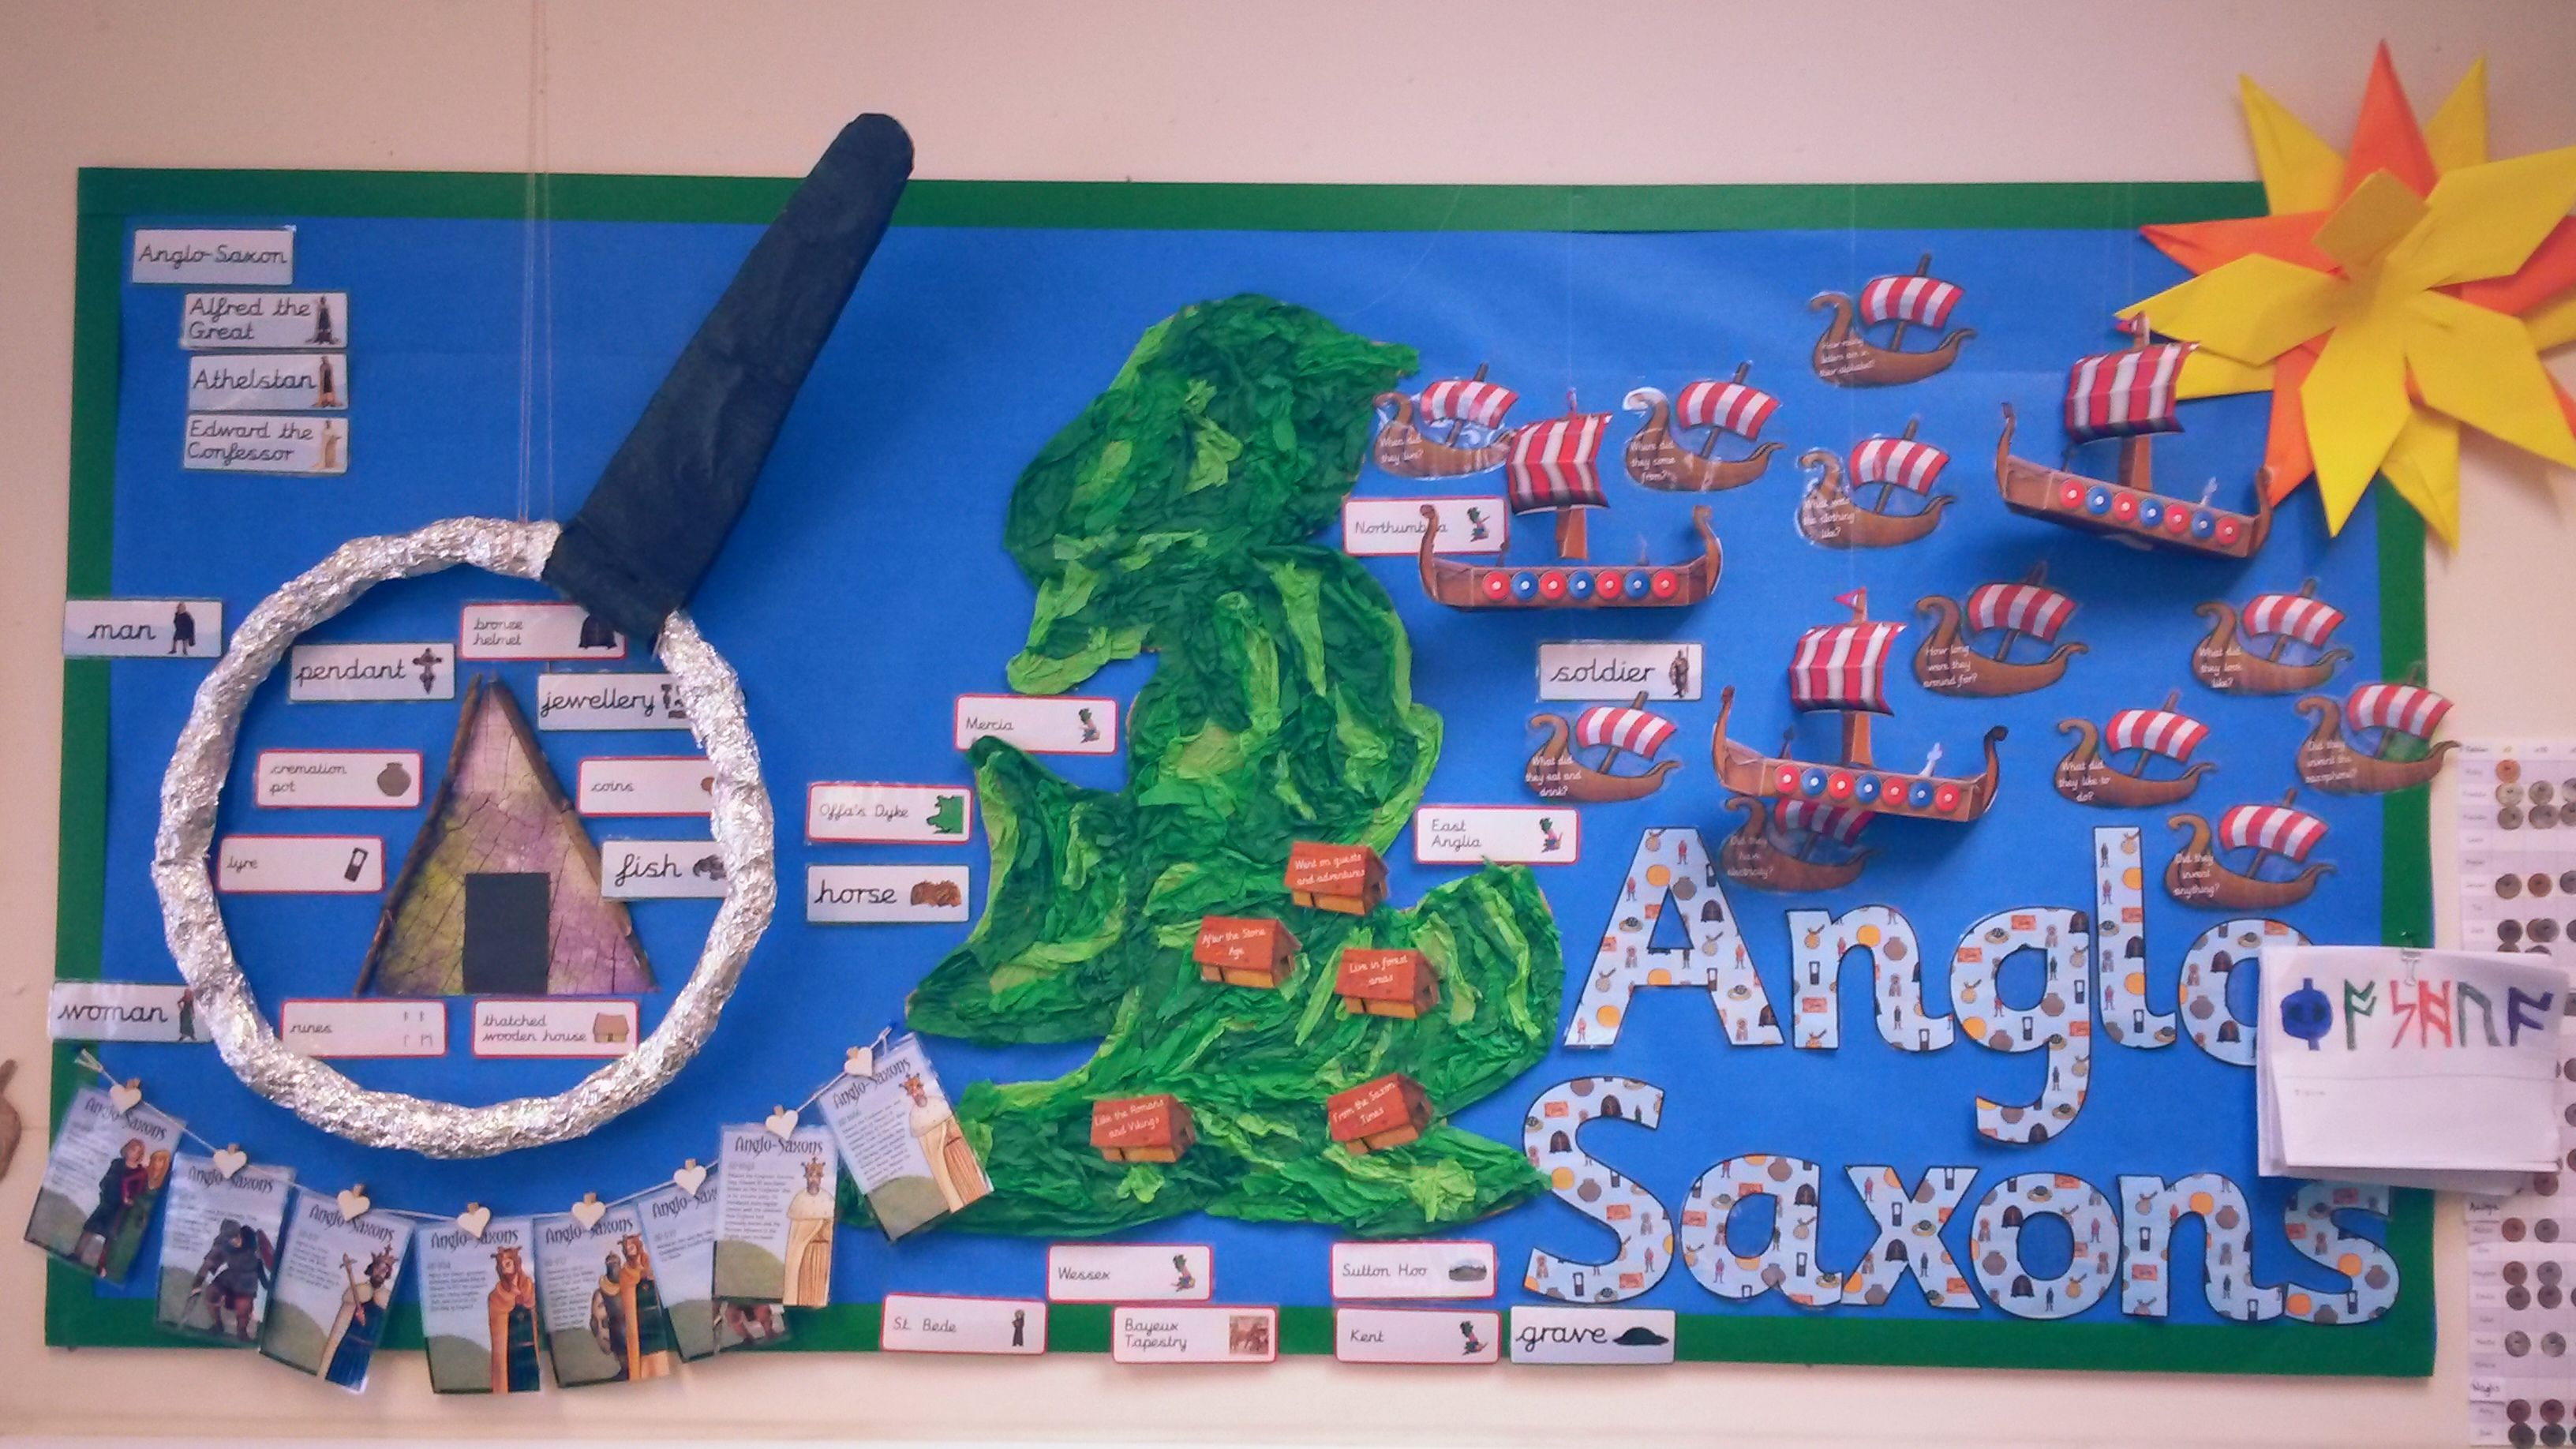 Anglo saxons display classroom display class display history anglo saxons display classroom display class display history past old anglo saxons boats long boat early years eyfs ks1 school pinterest gumiabroncs Images